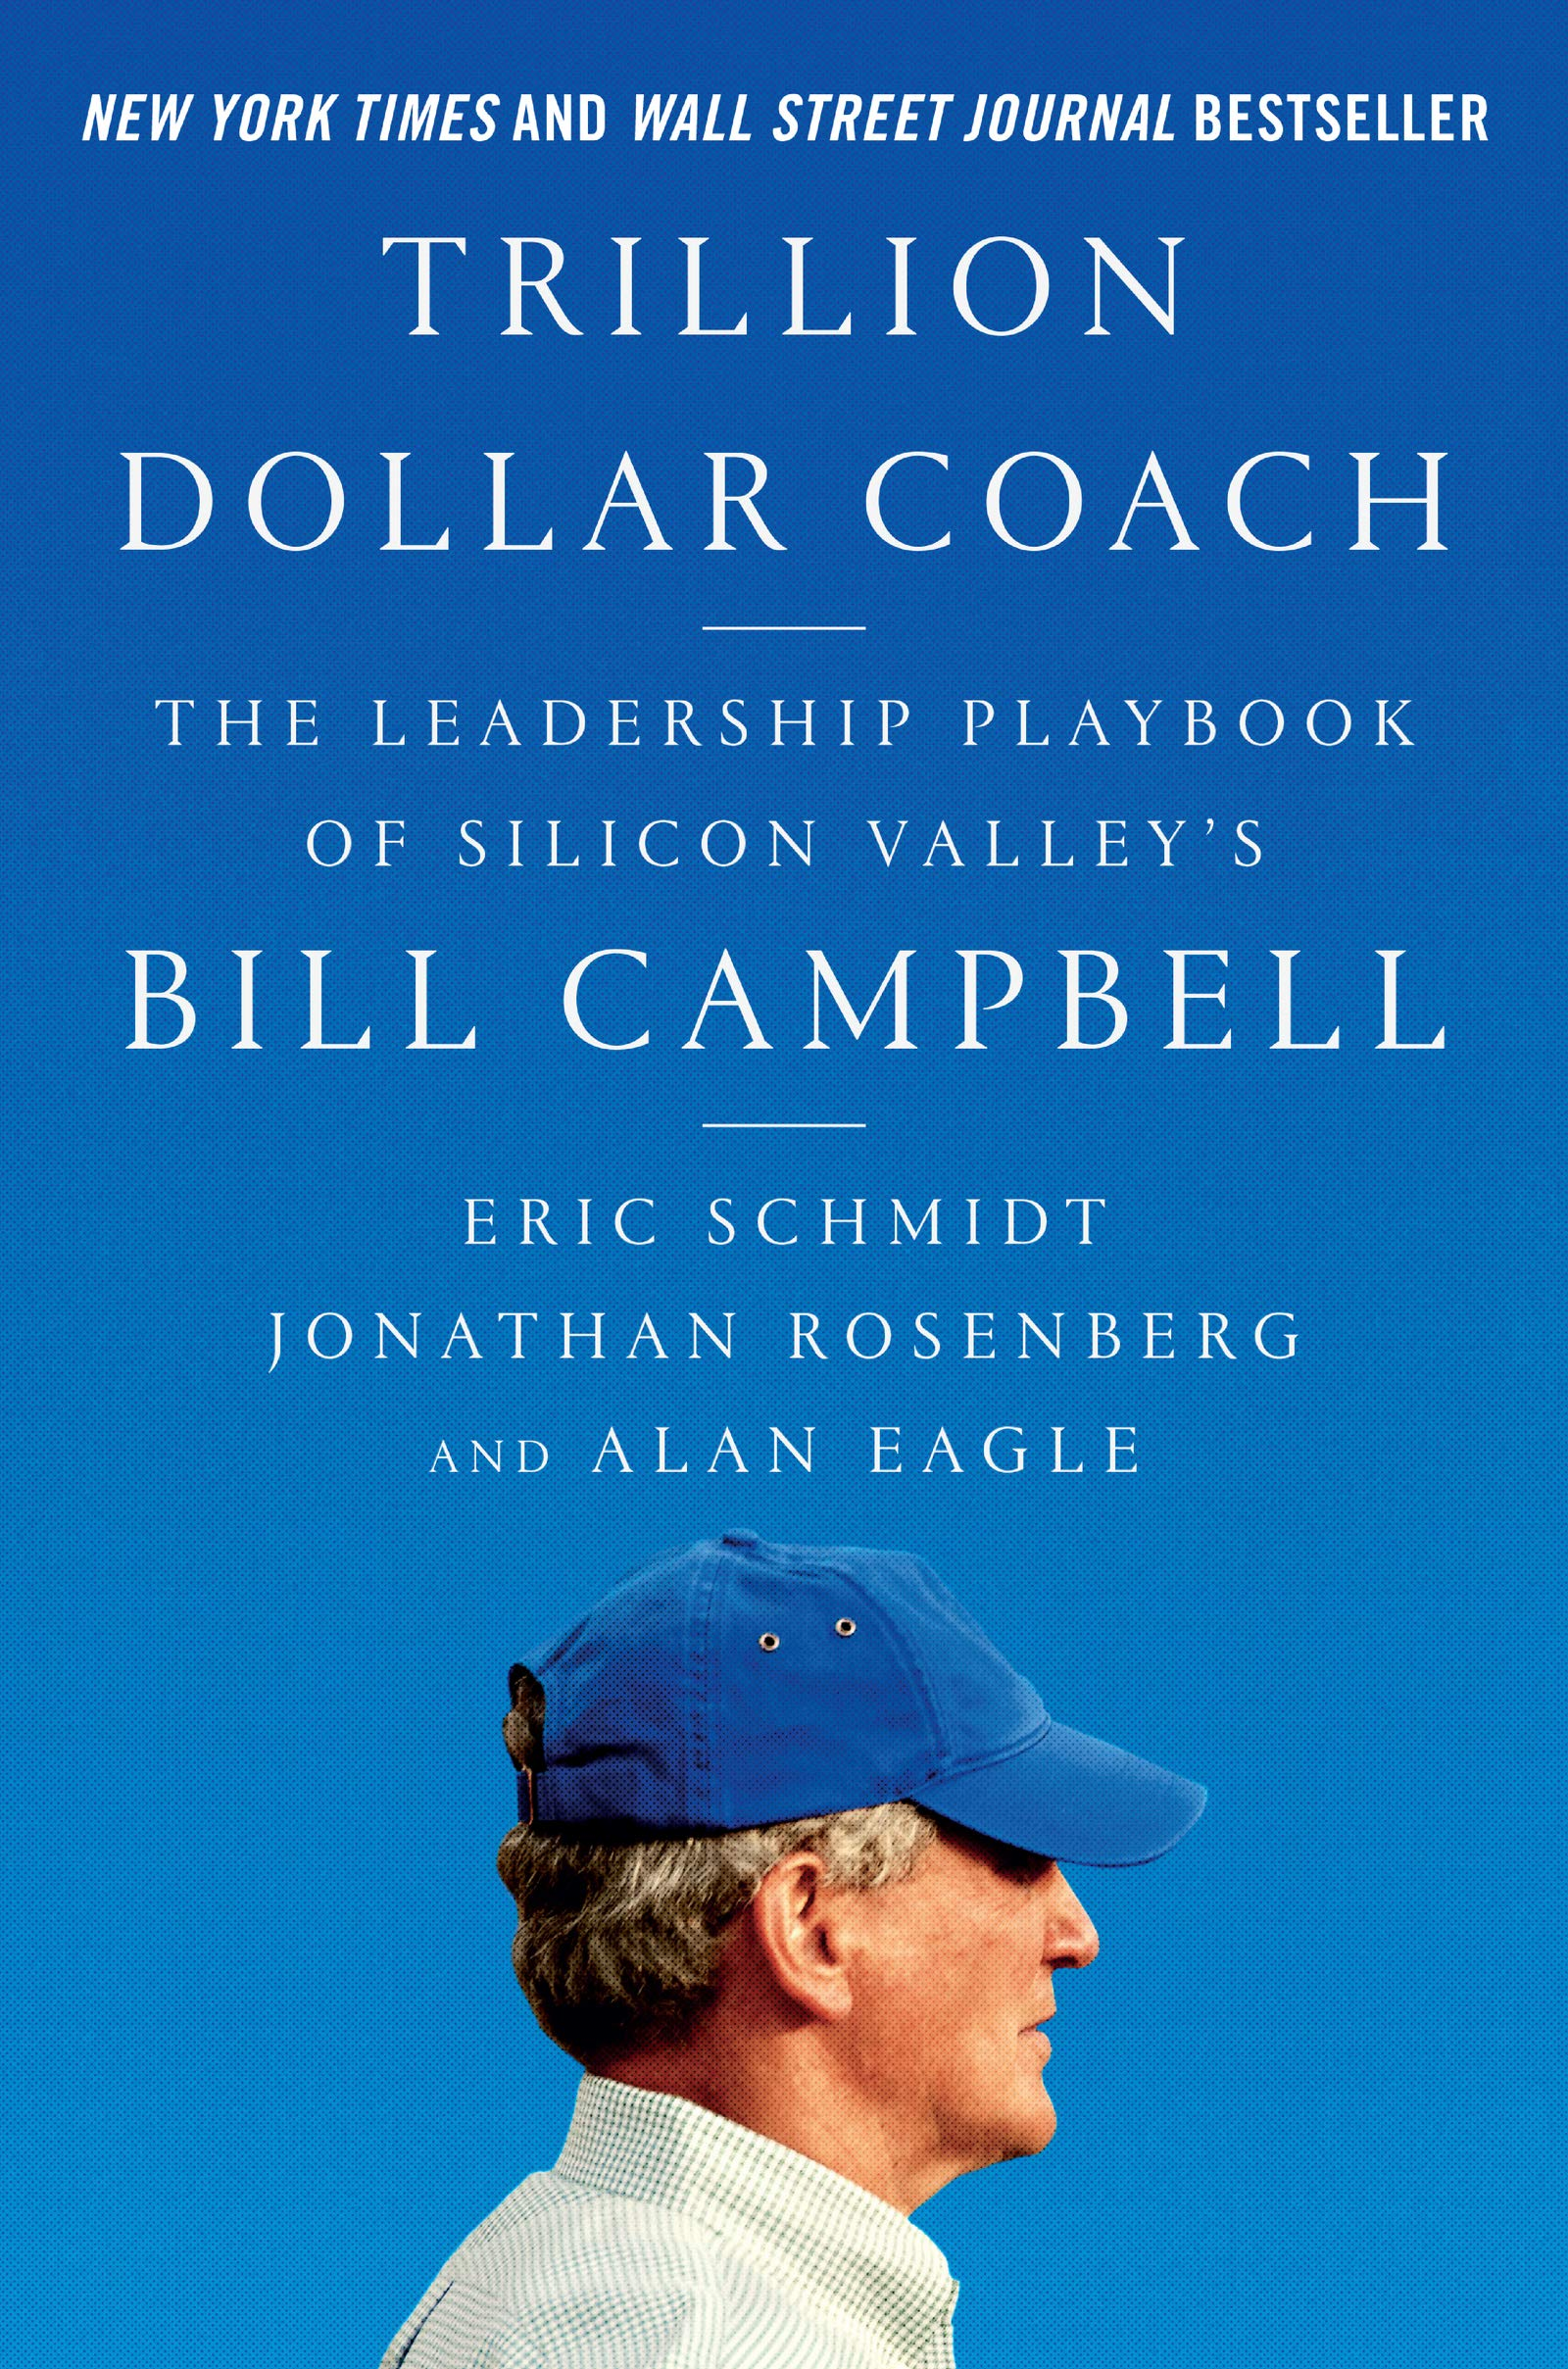 Trillion Dollar Coach: The Leadership Playbook of Silicon Valley's Bill Campbell - Book Notes